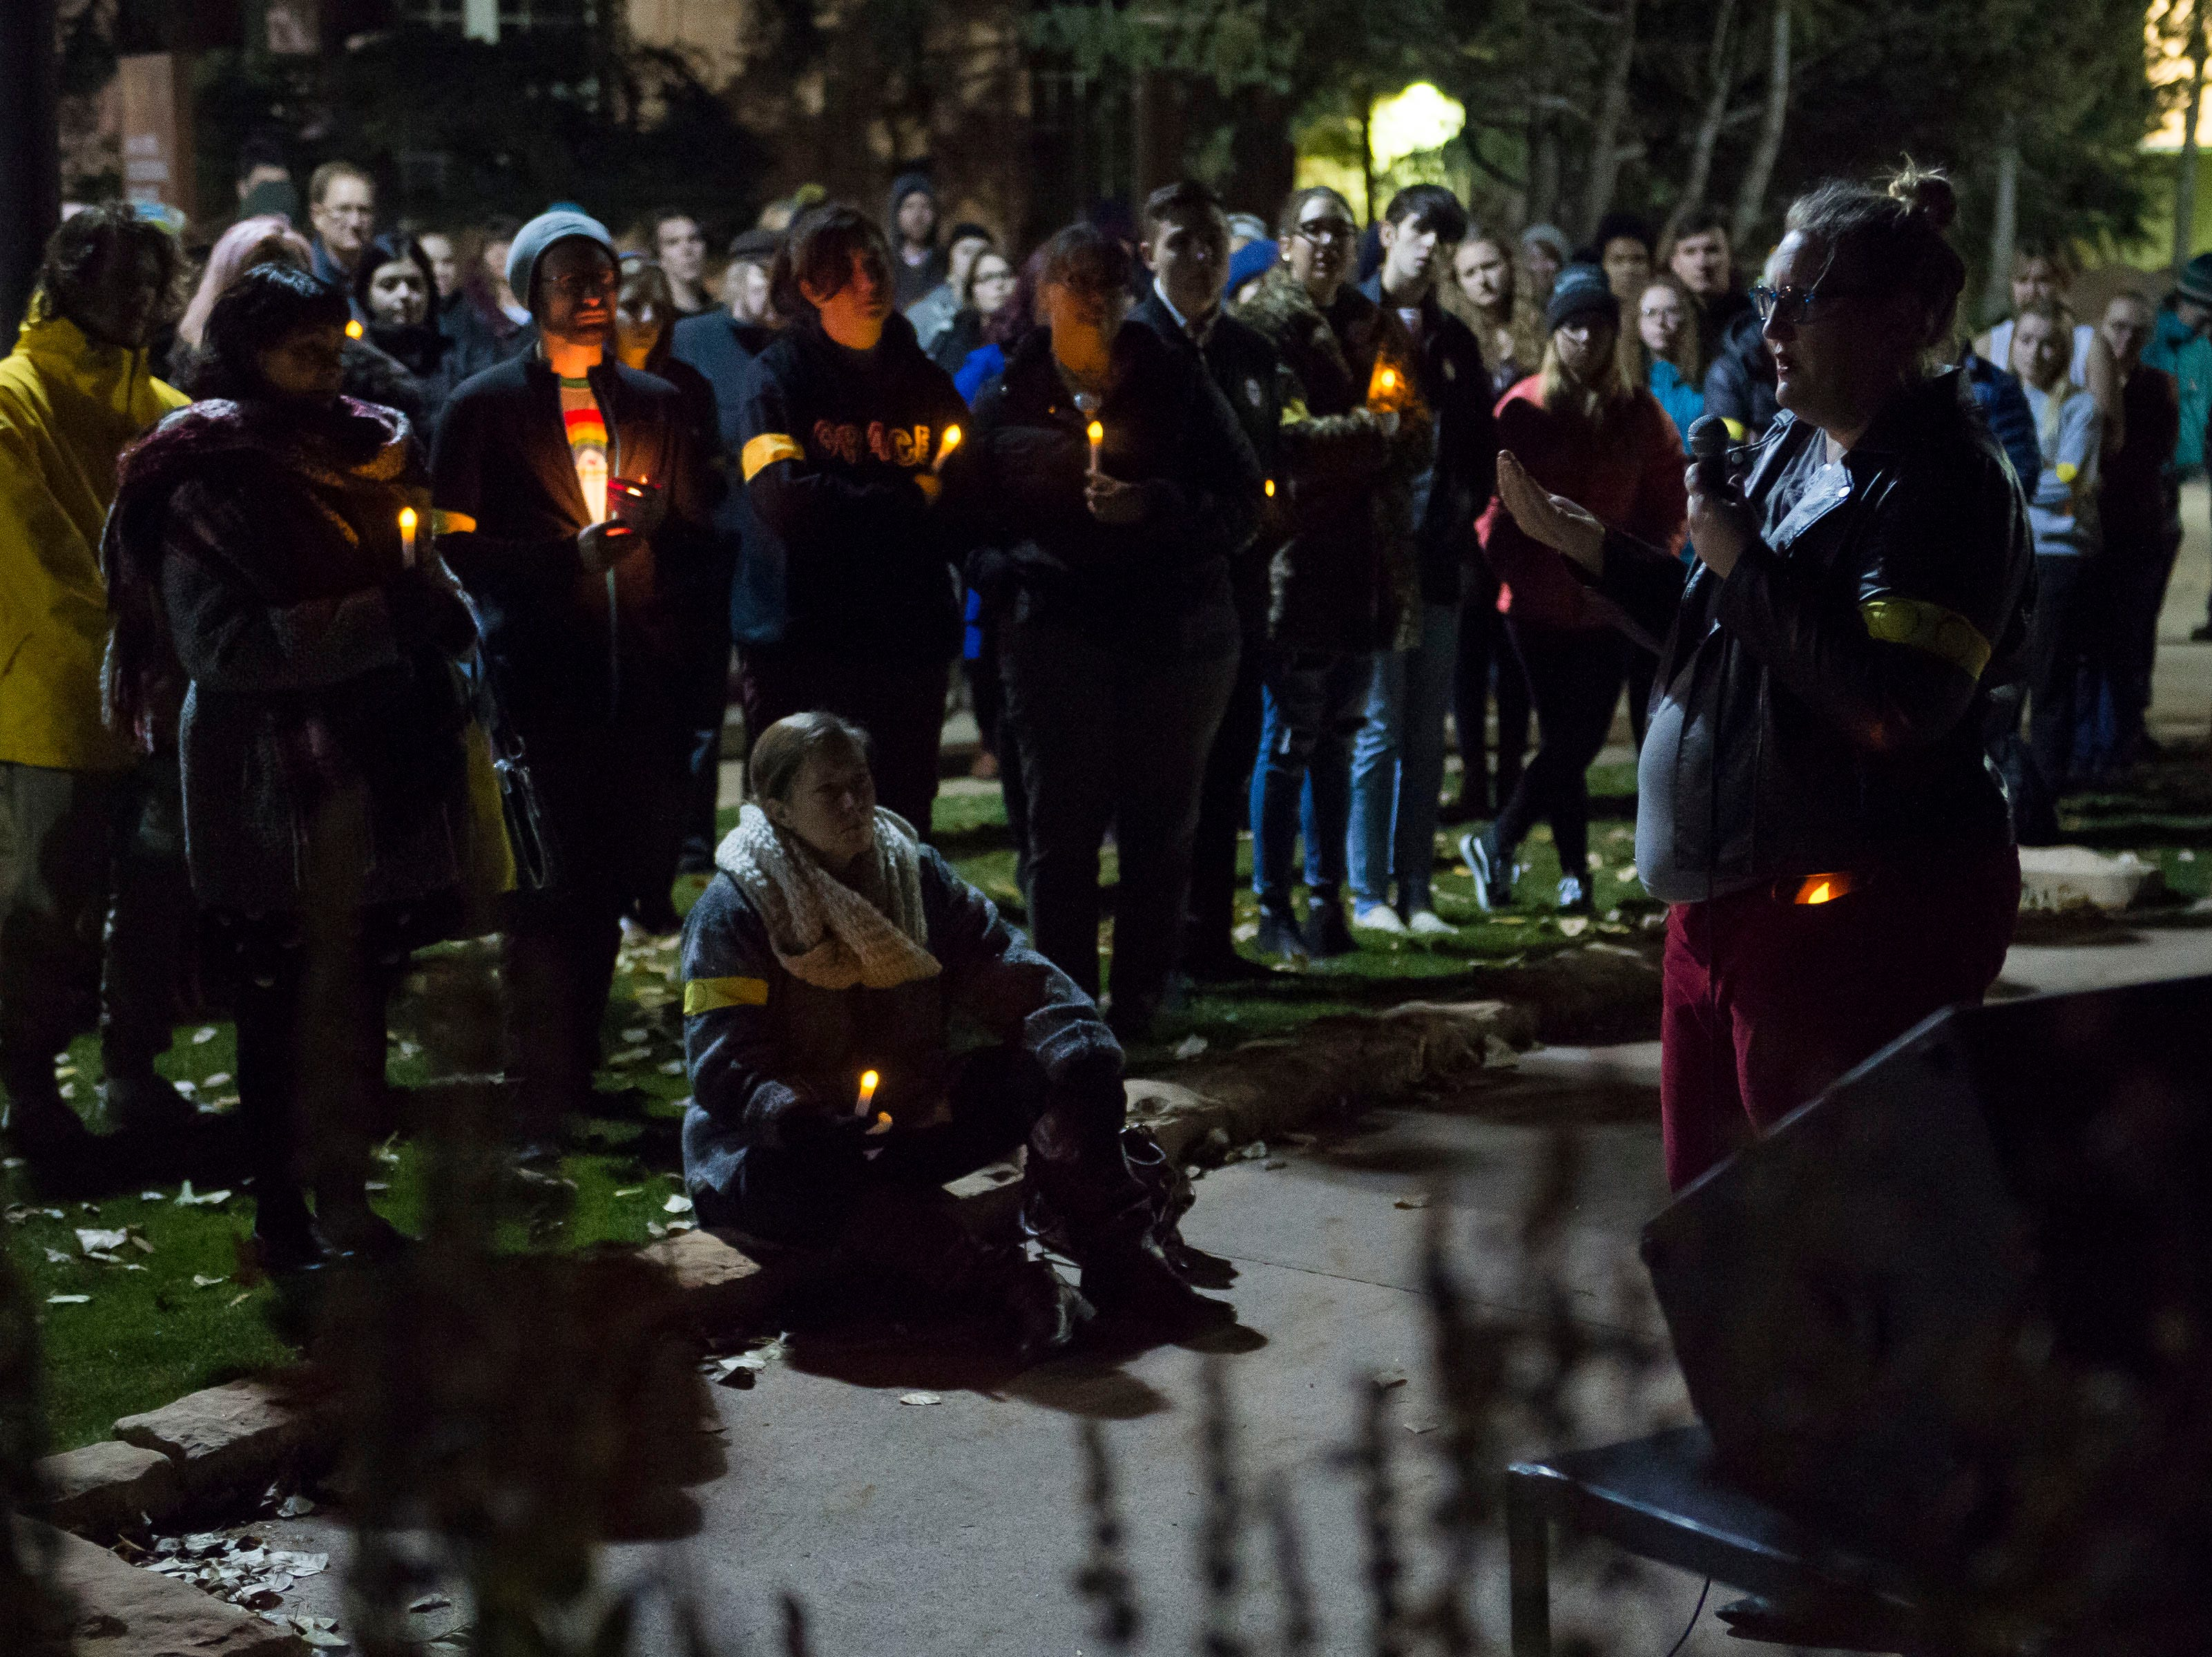 Executive director of Wyoming Equality Sara Burlingame speaks during a candlelight vigil on the 20th anniversary of Matthew Shepard's death on Friday, Oct. 12, 2018, at Prexy's Pasture on the University of Wyoming campus in Laramie, Wyo.